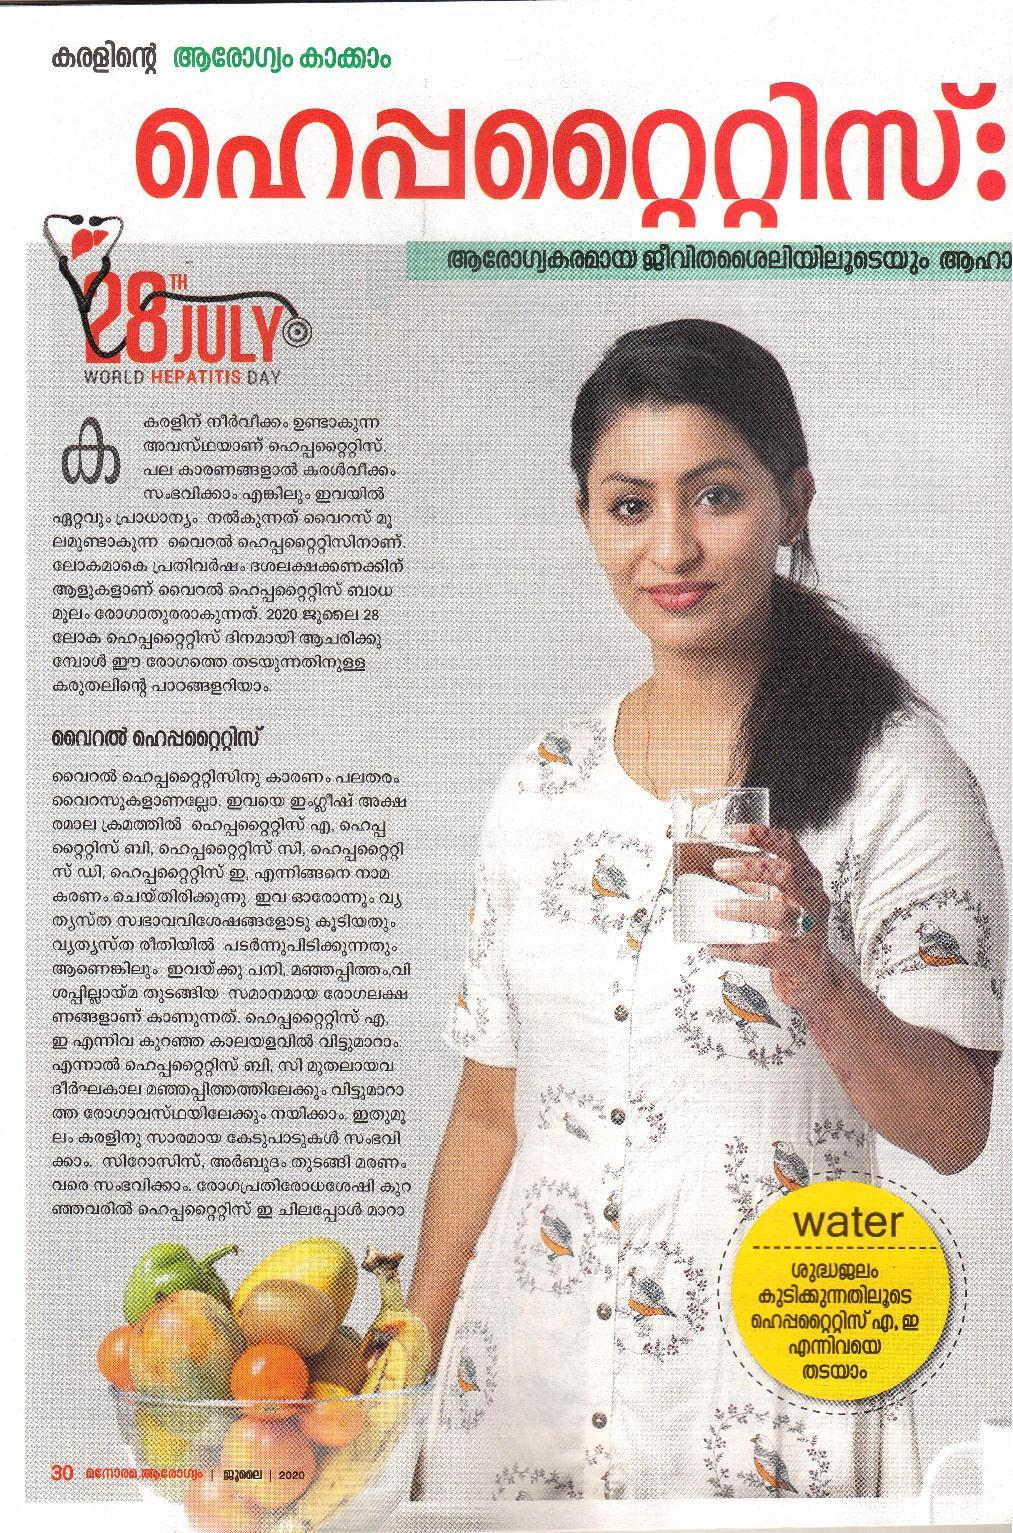 July 20200 Manorama Arogyam Pg 30 34 page 001